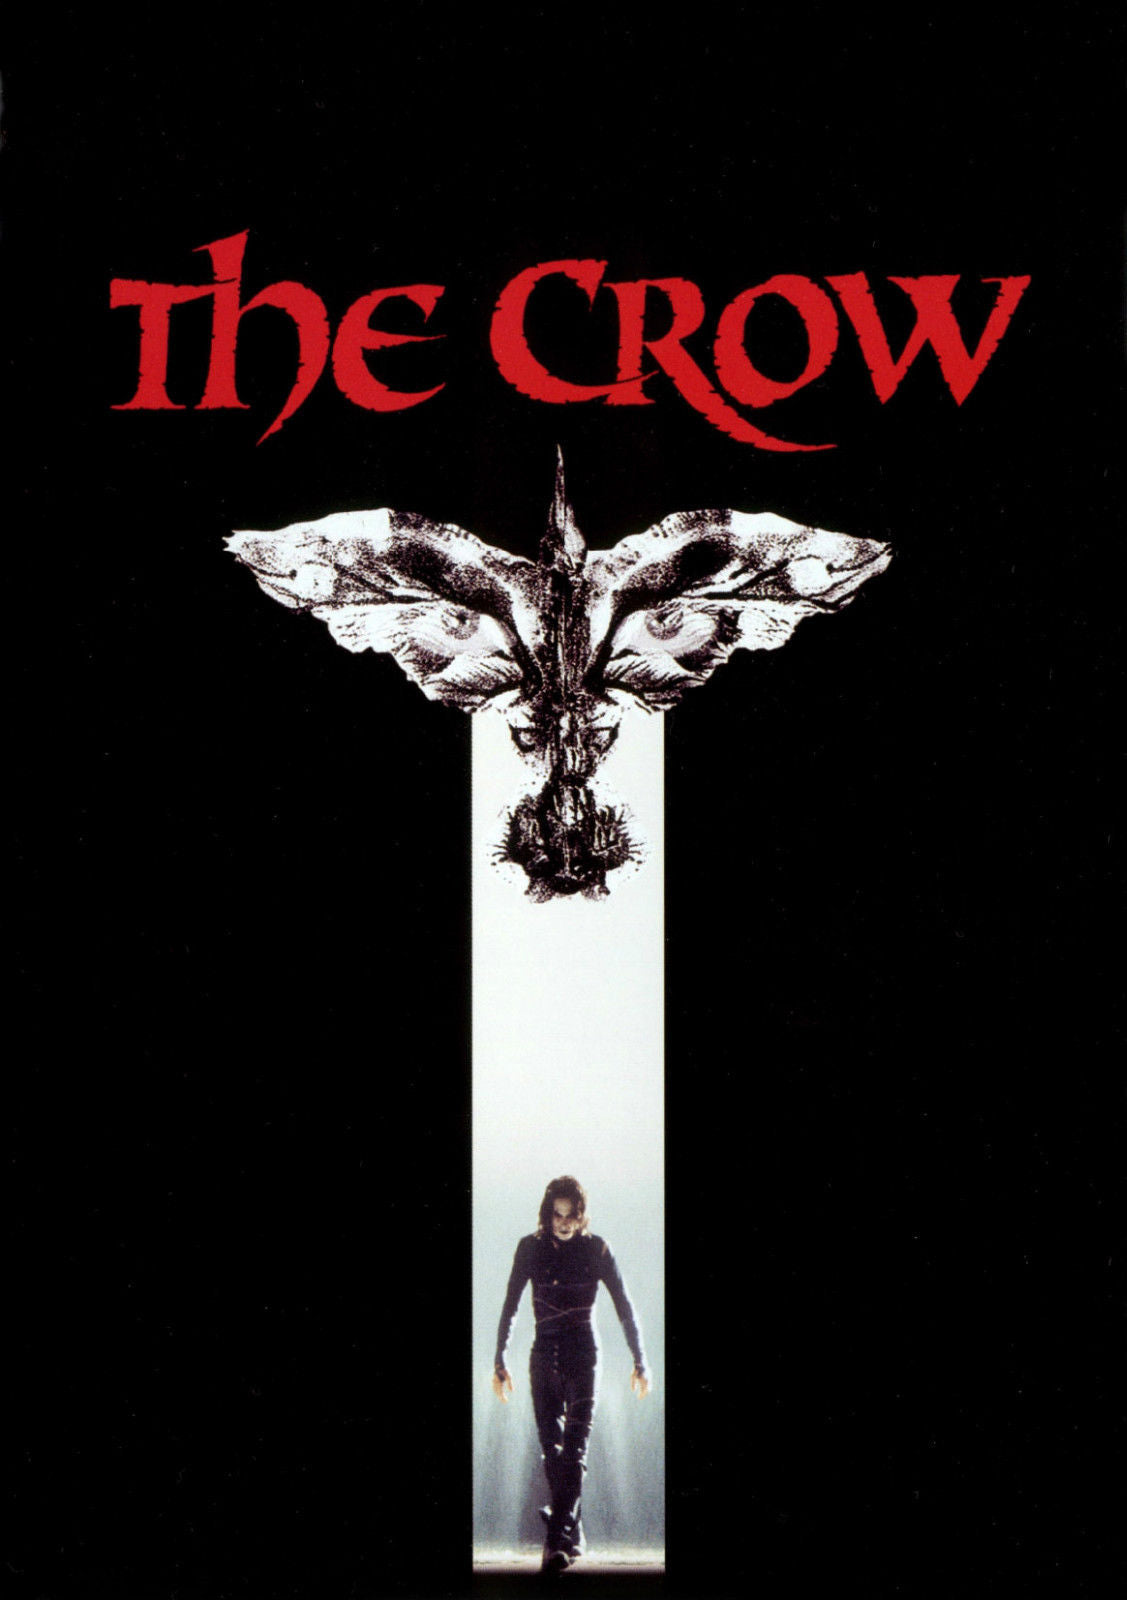 The Crow - Gothic Must See Movies